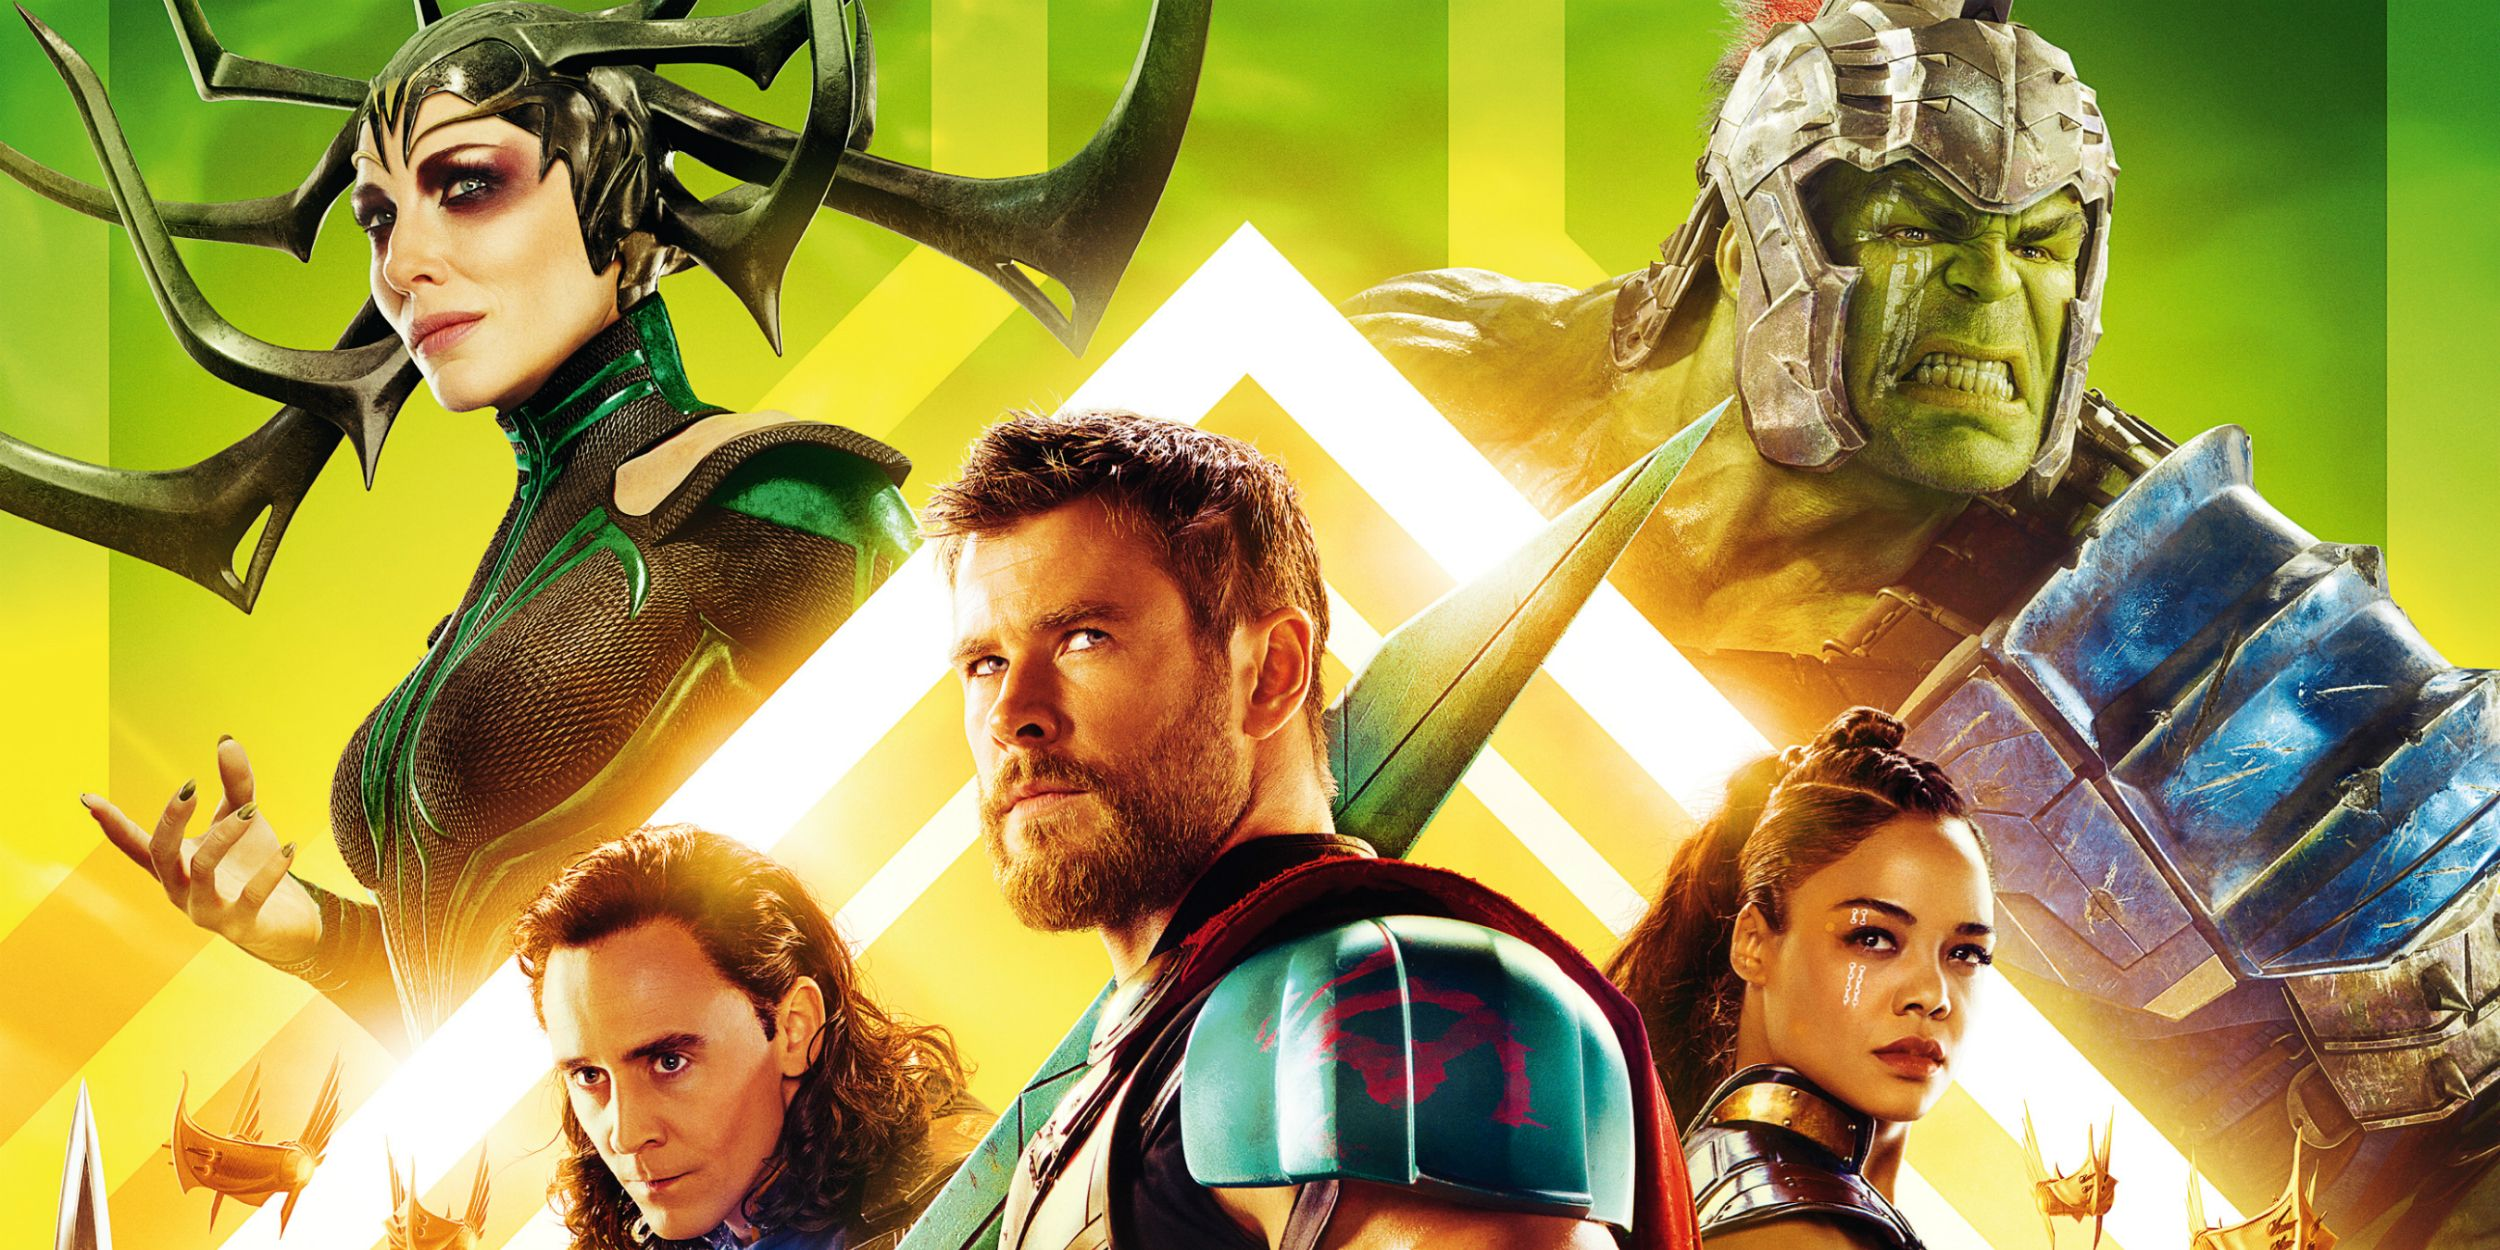 Thor: Ragnarok Cast Guide: What Other Marvel Movies Are They In?